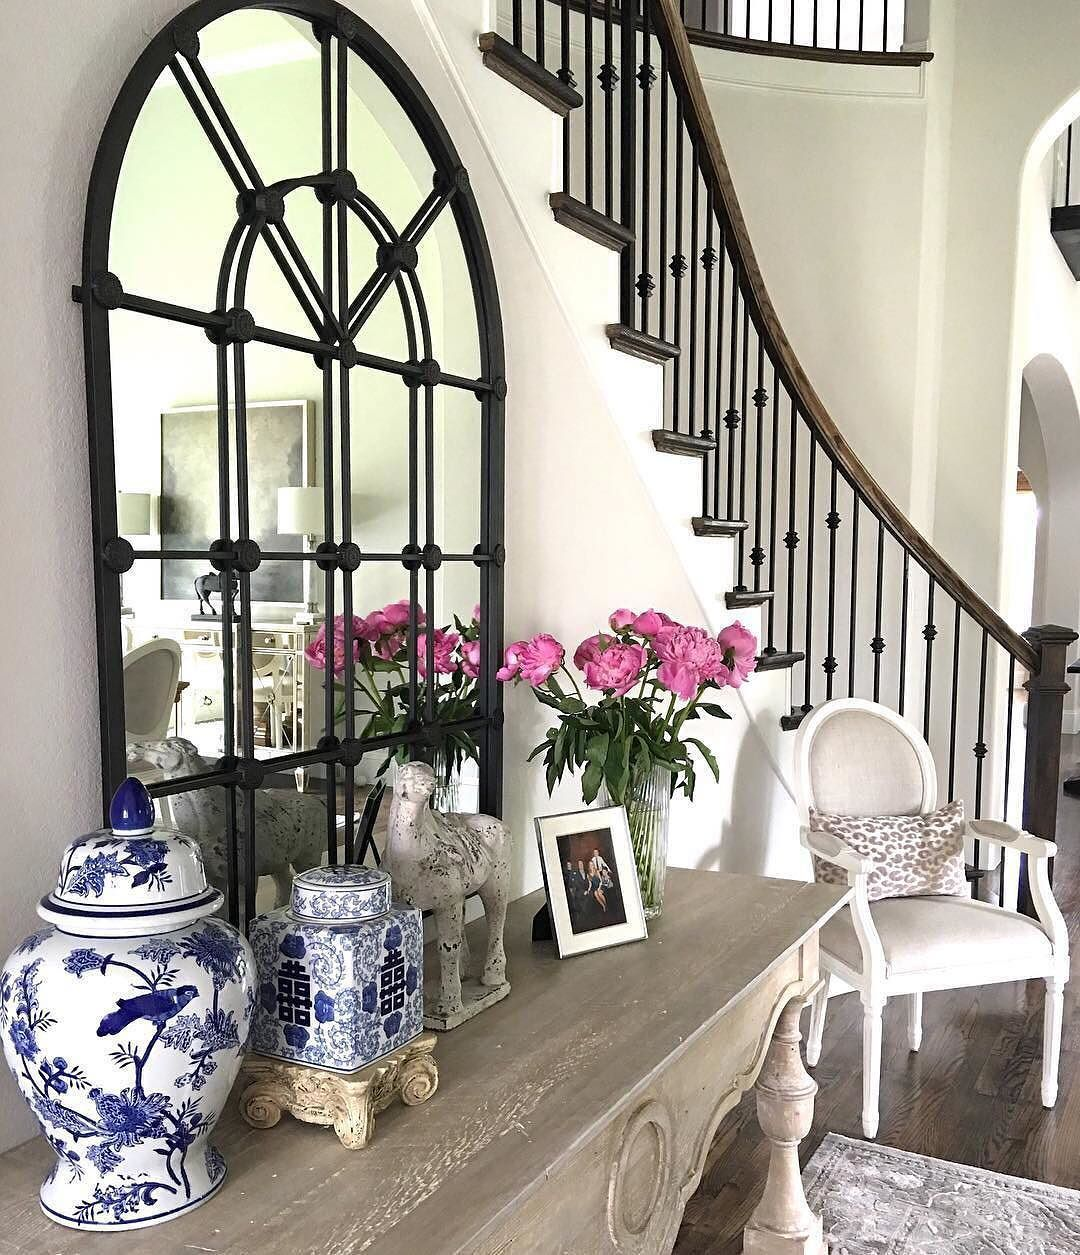 Discount Home Decor Sites: Our Montclair Mirror Is The Backdrop To A Beautifully